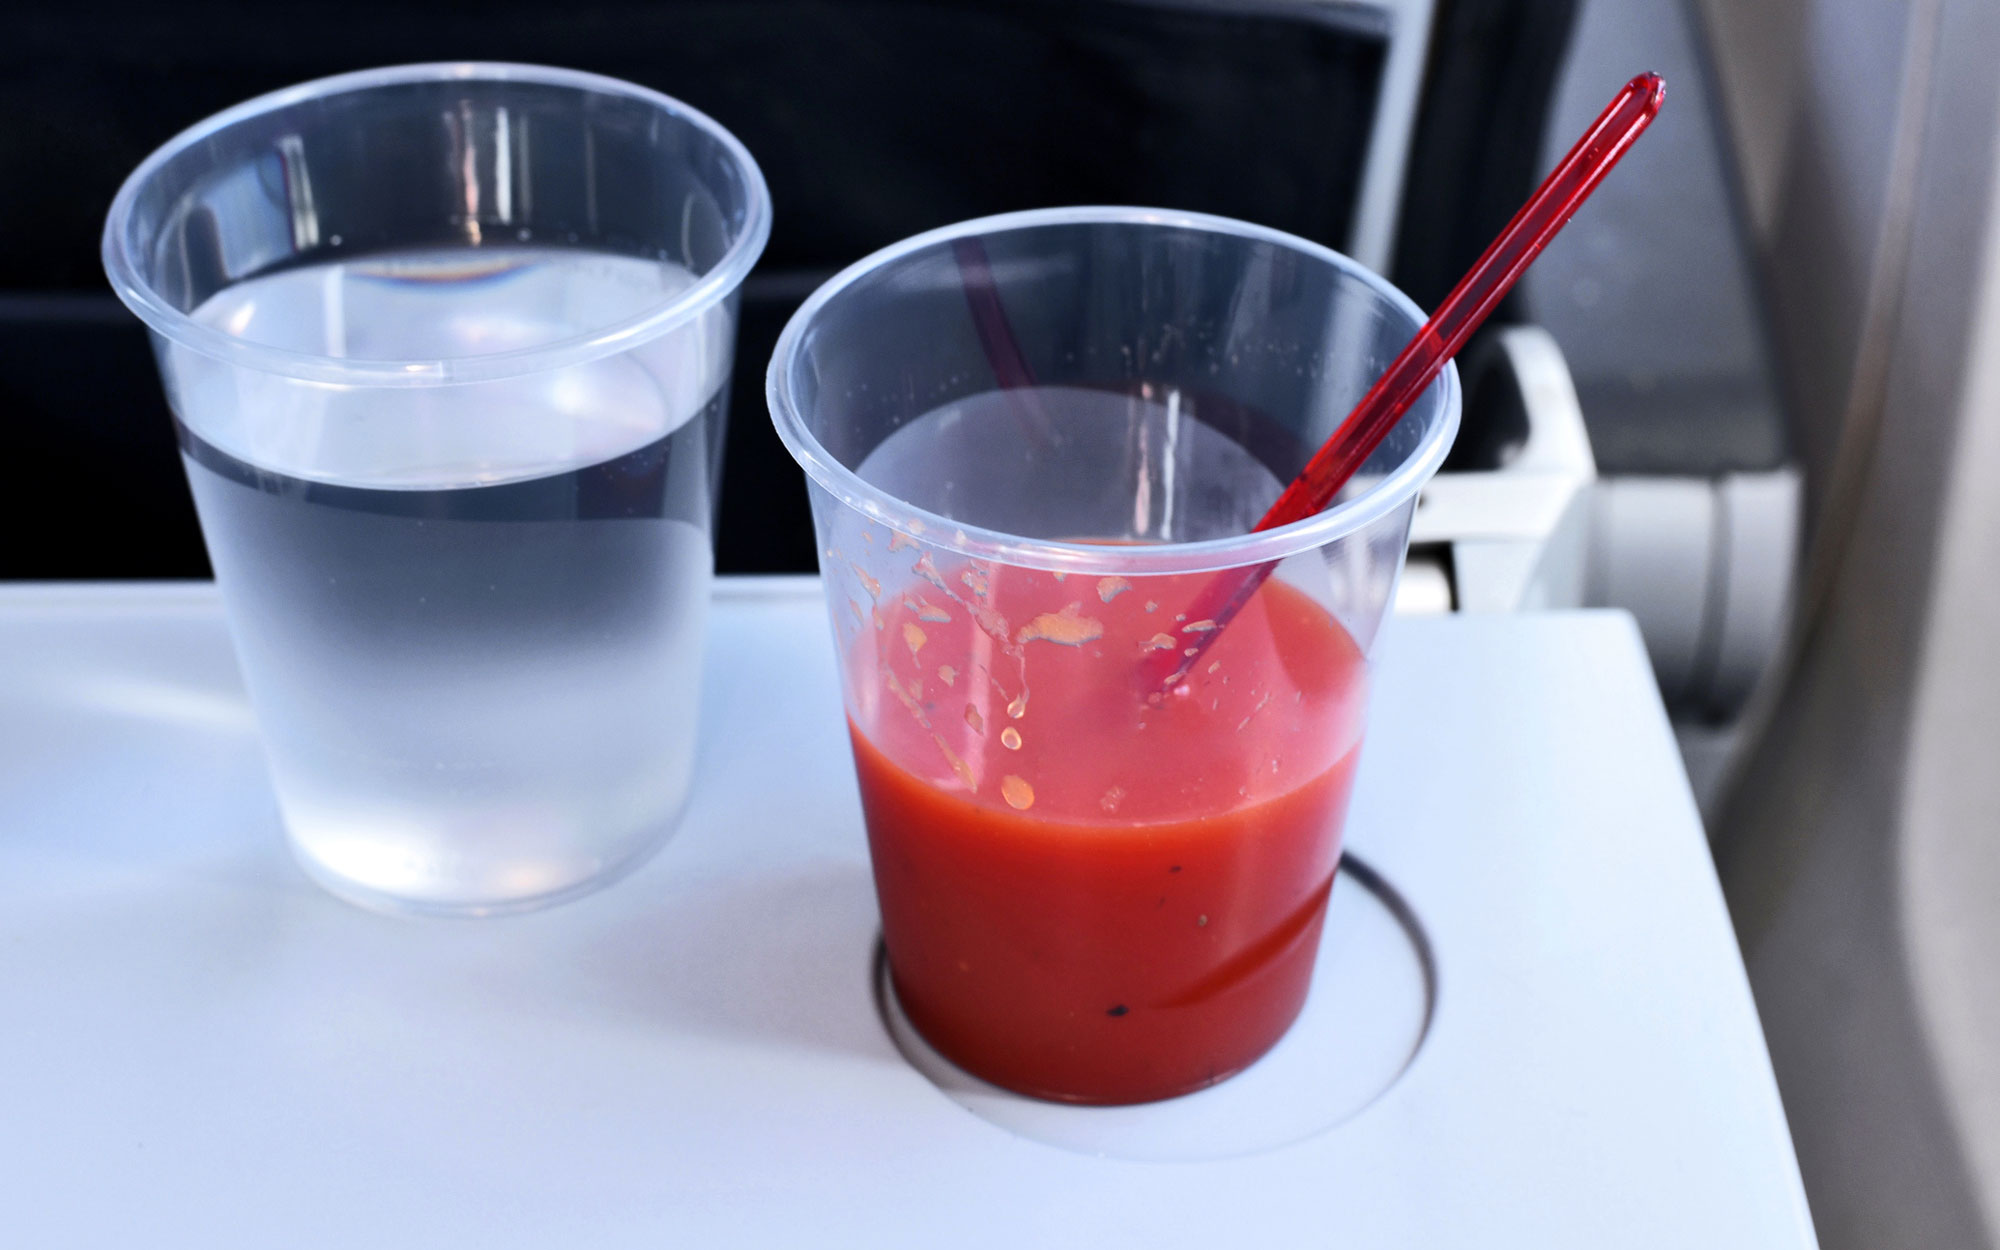 Tomato Juice Tastes Better on Airplane